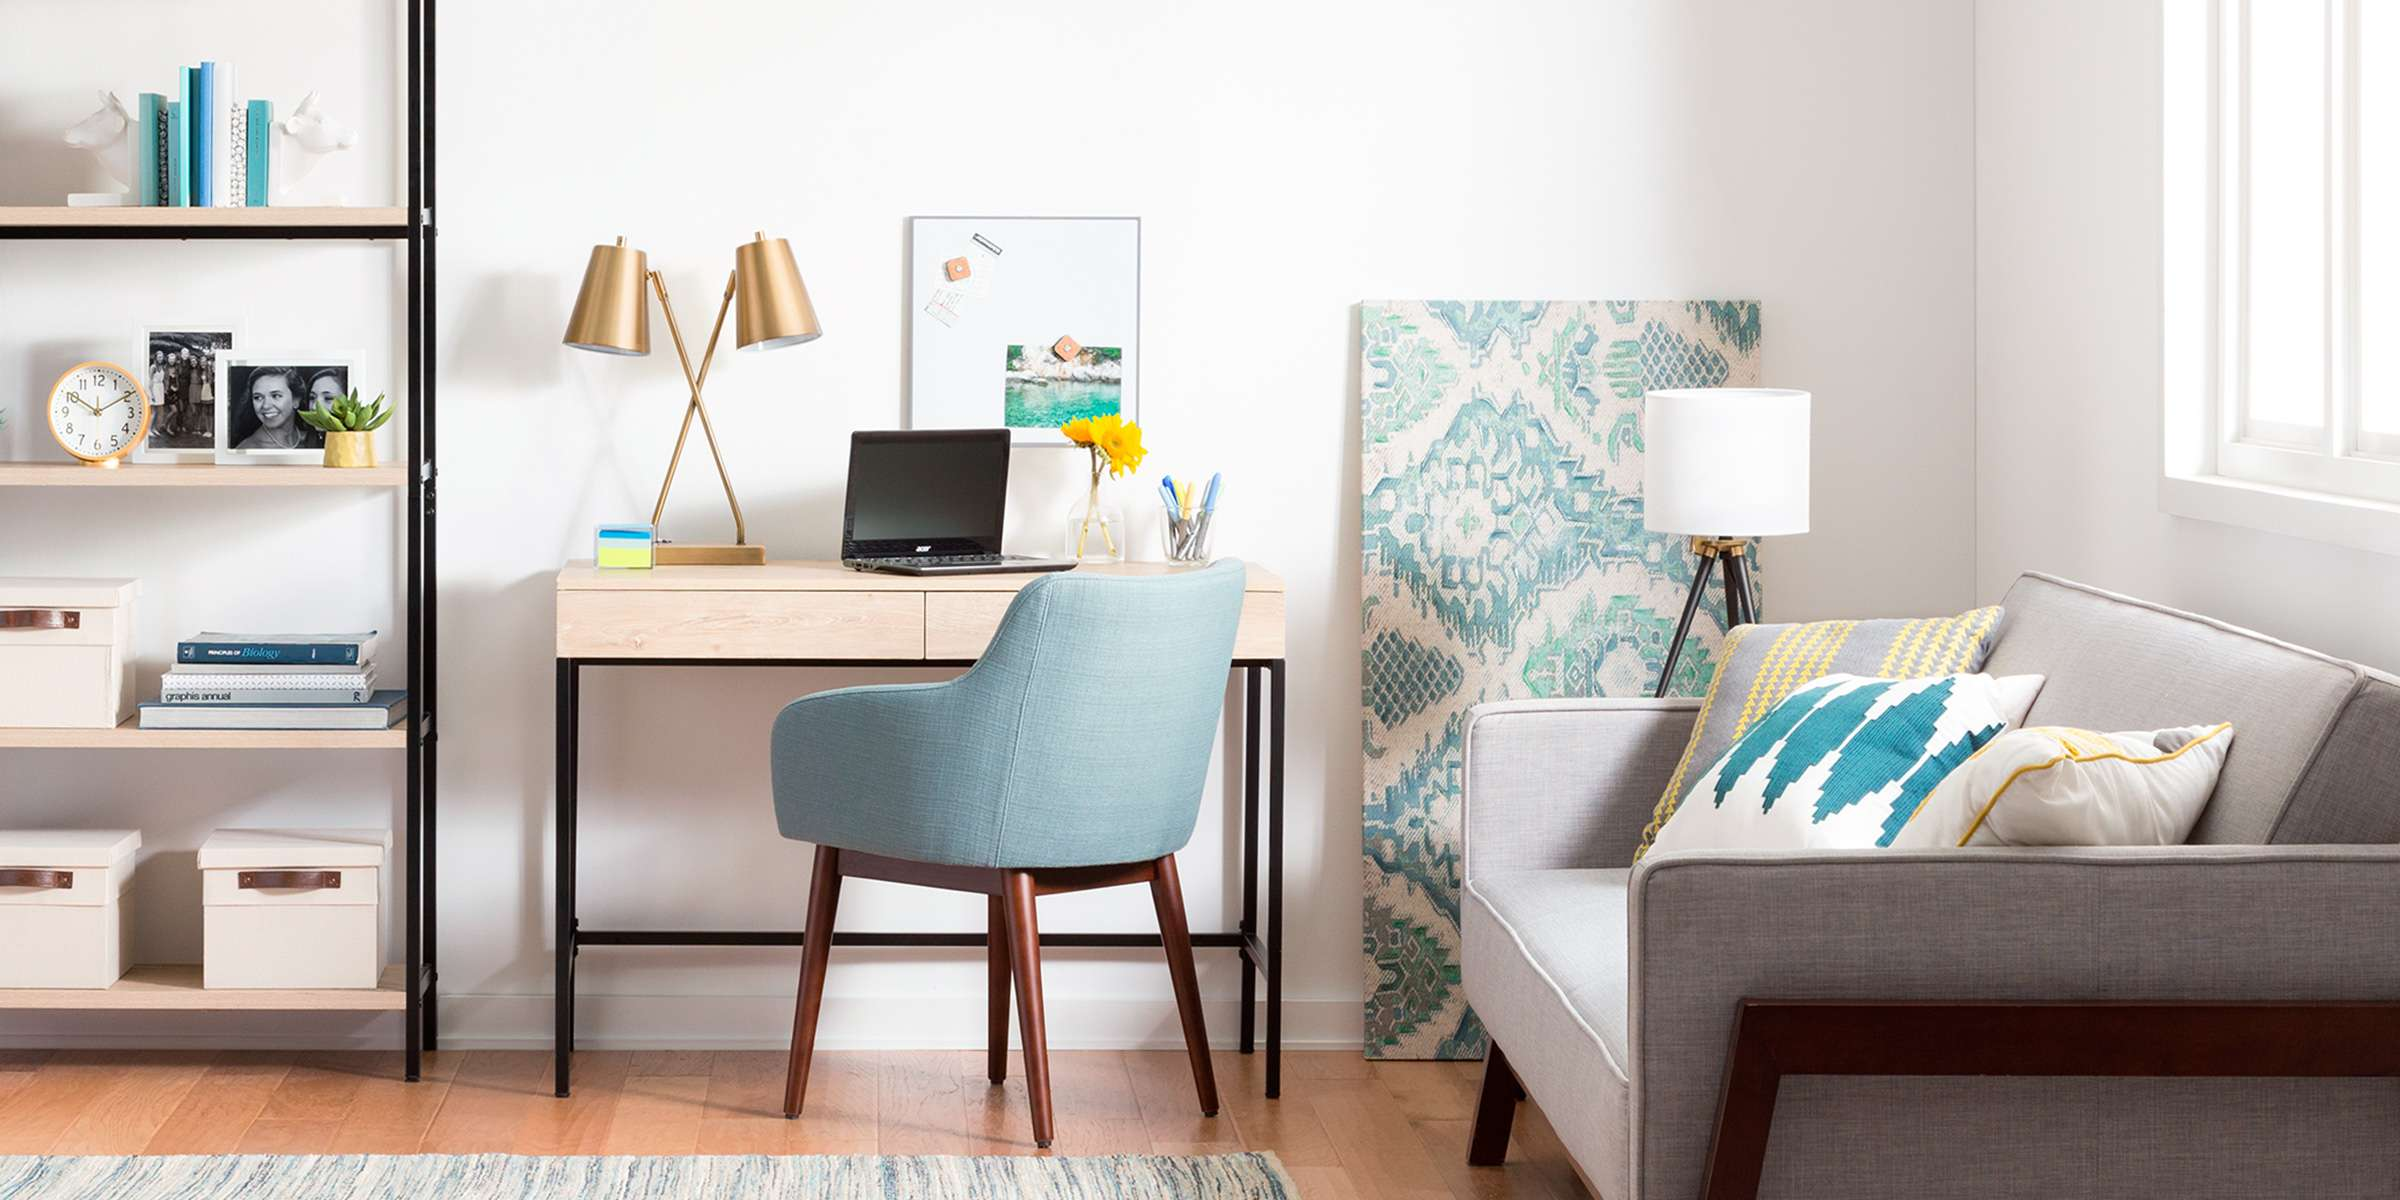 Your Home Office Needs To Be Freshed Up, Here You Have Some Tips 3 home office Your Home Office Needs To Be Freshed Up, Here You Have Some Tips Your Home Office Needs To Be Freshed Up Here You Have Some Tips 3